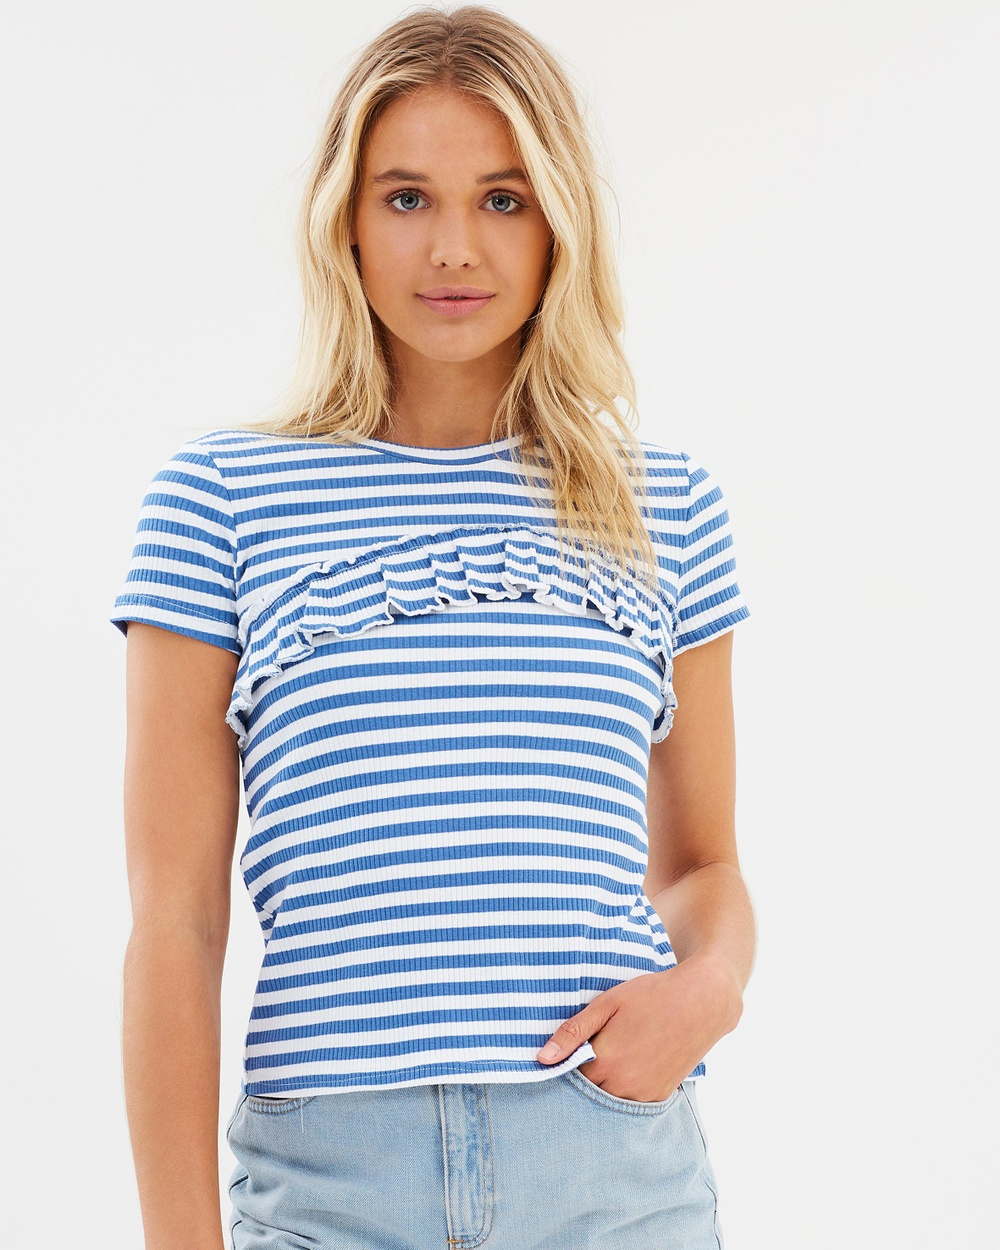 Atmos & Here ICONIC EXCLUSIVE Florence Frill Tee Tops Blue & White Stripe ICONIC EXCLUSIVE Florence Frill Tee